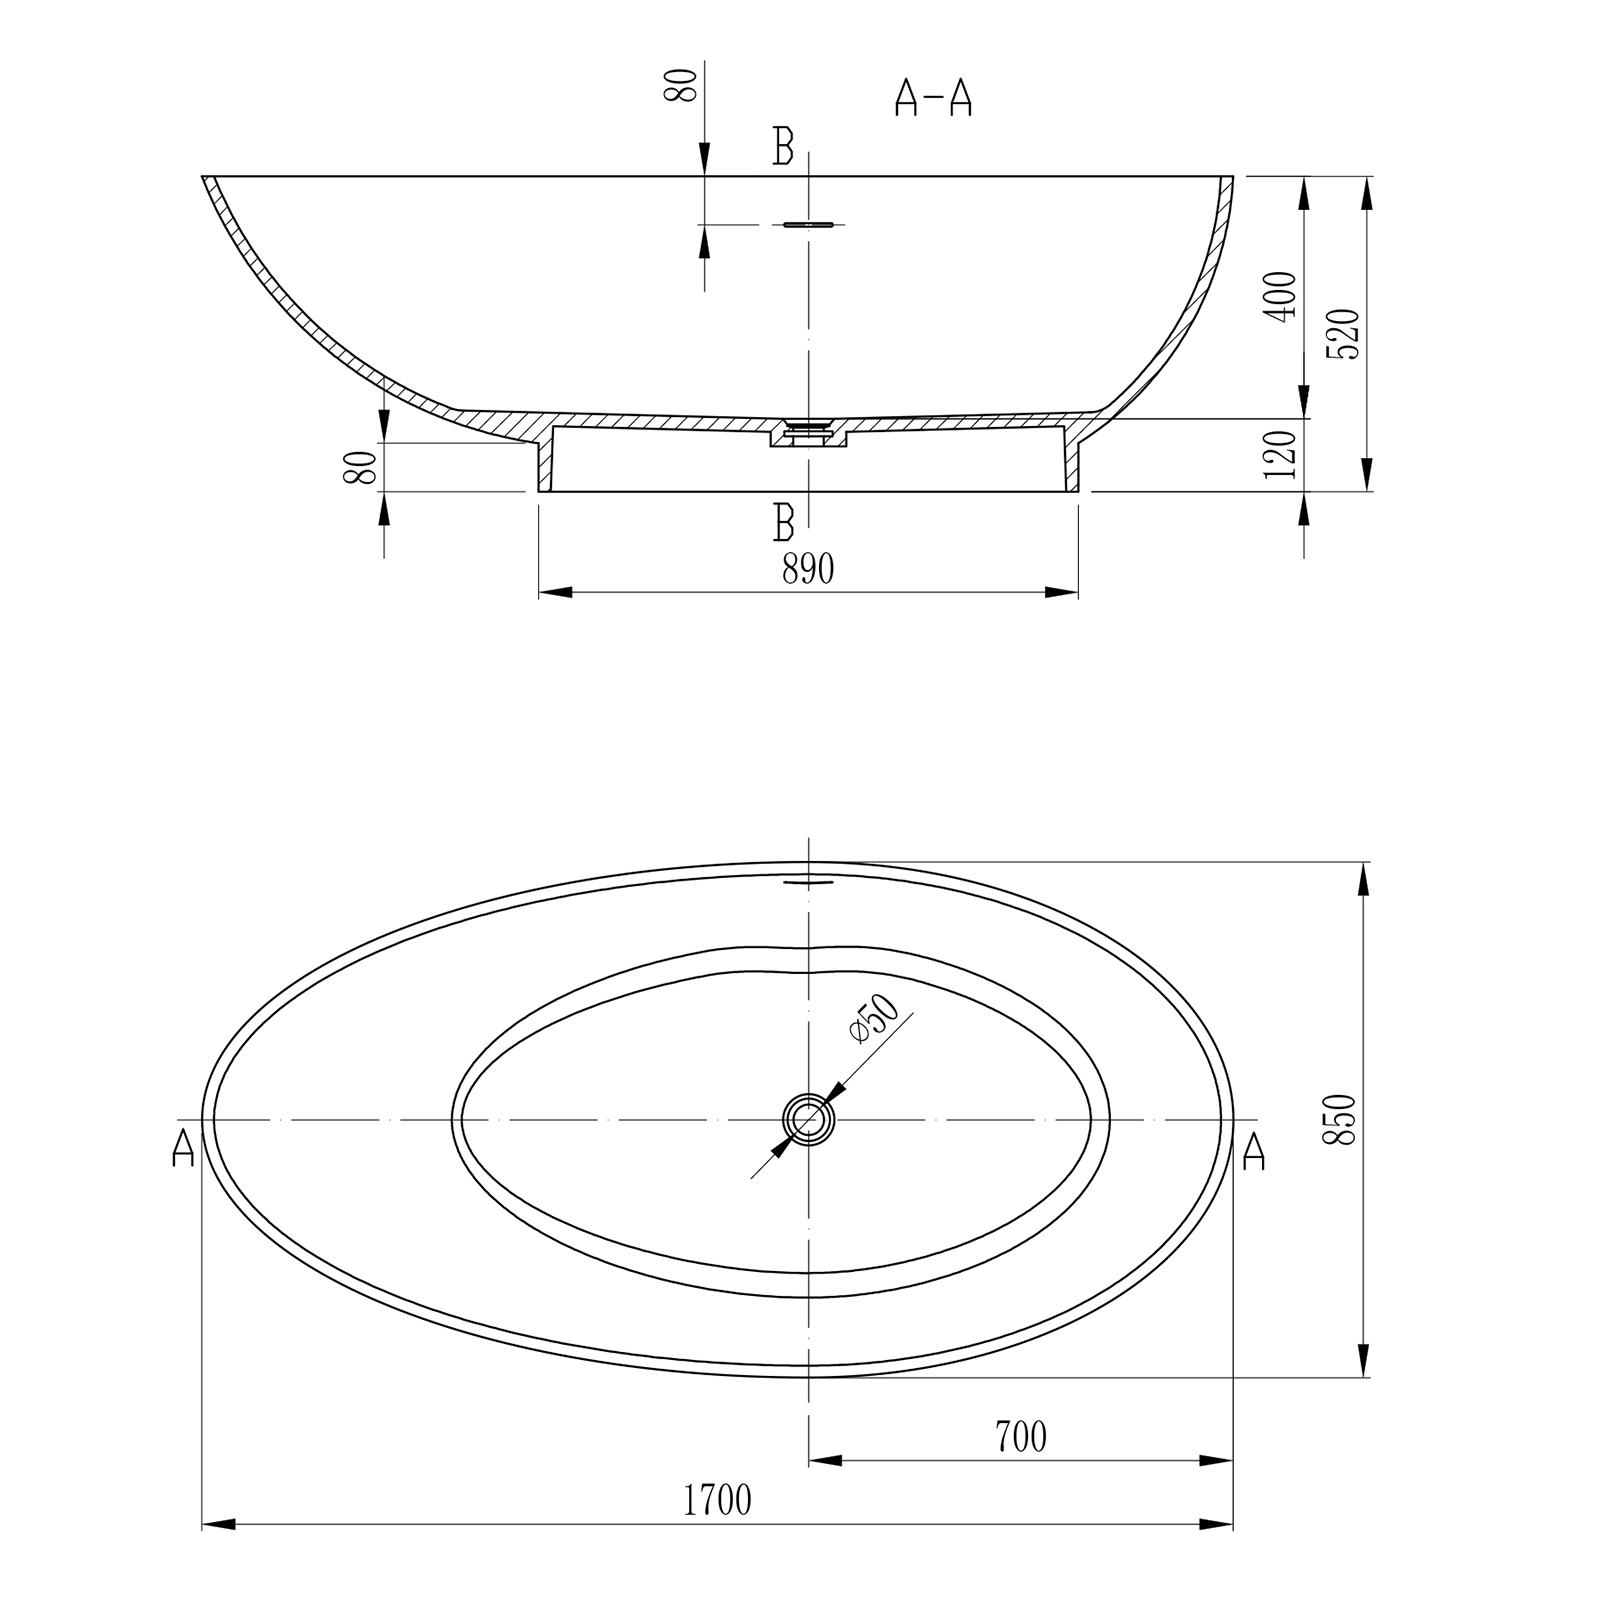 Freestanding bathtub VIGO 170cm - Drawing 3